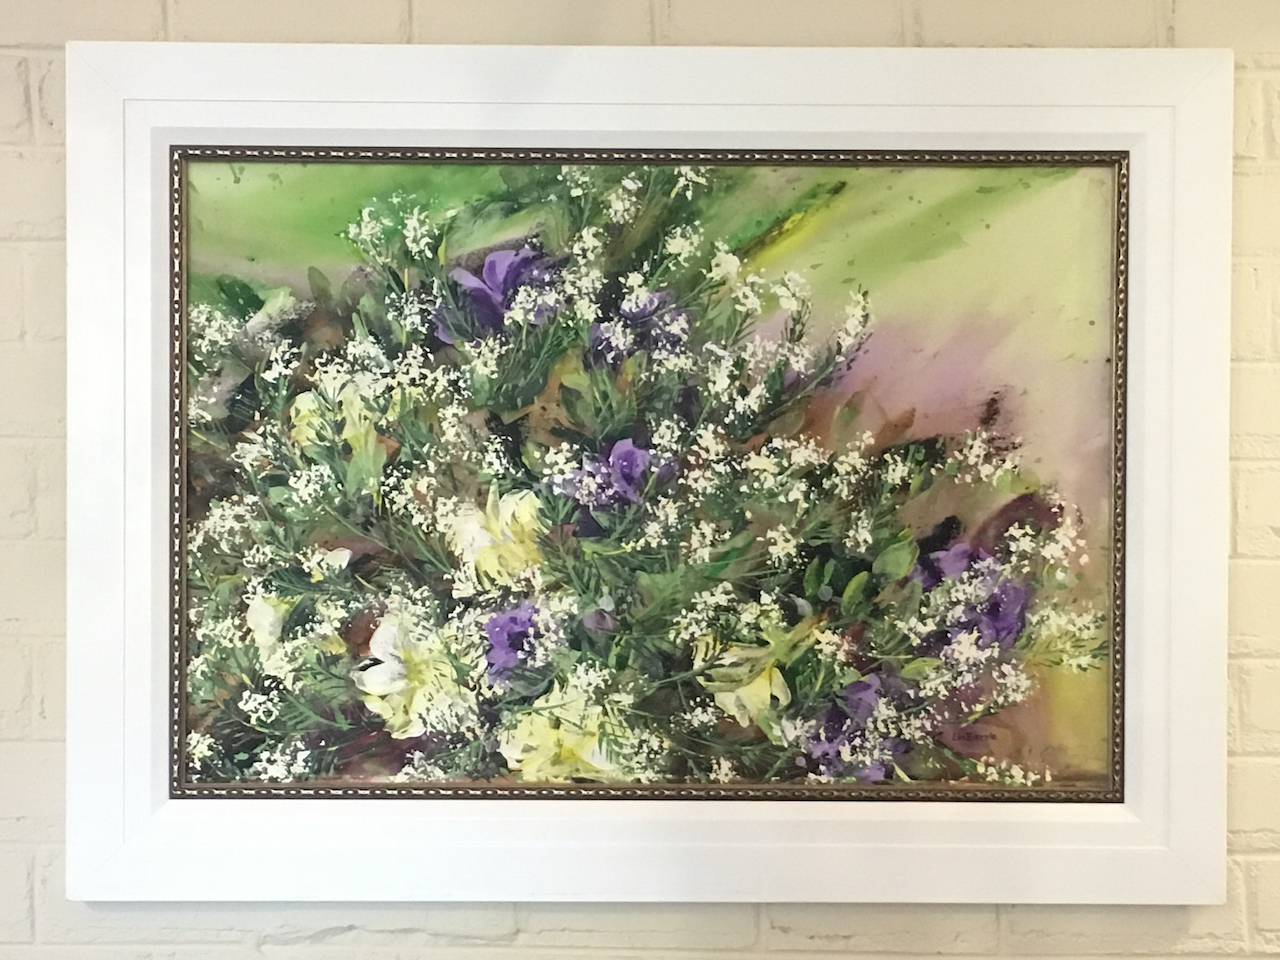 Alyssum and Petunias, acrylic on loose canvas, 61 x 91 cm lo resjpg.jpg